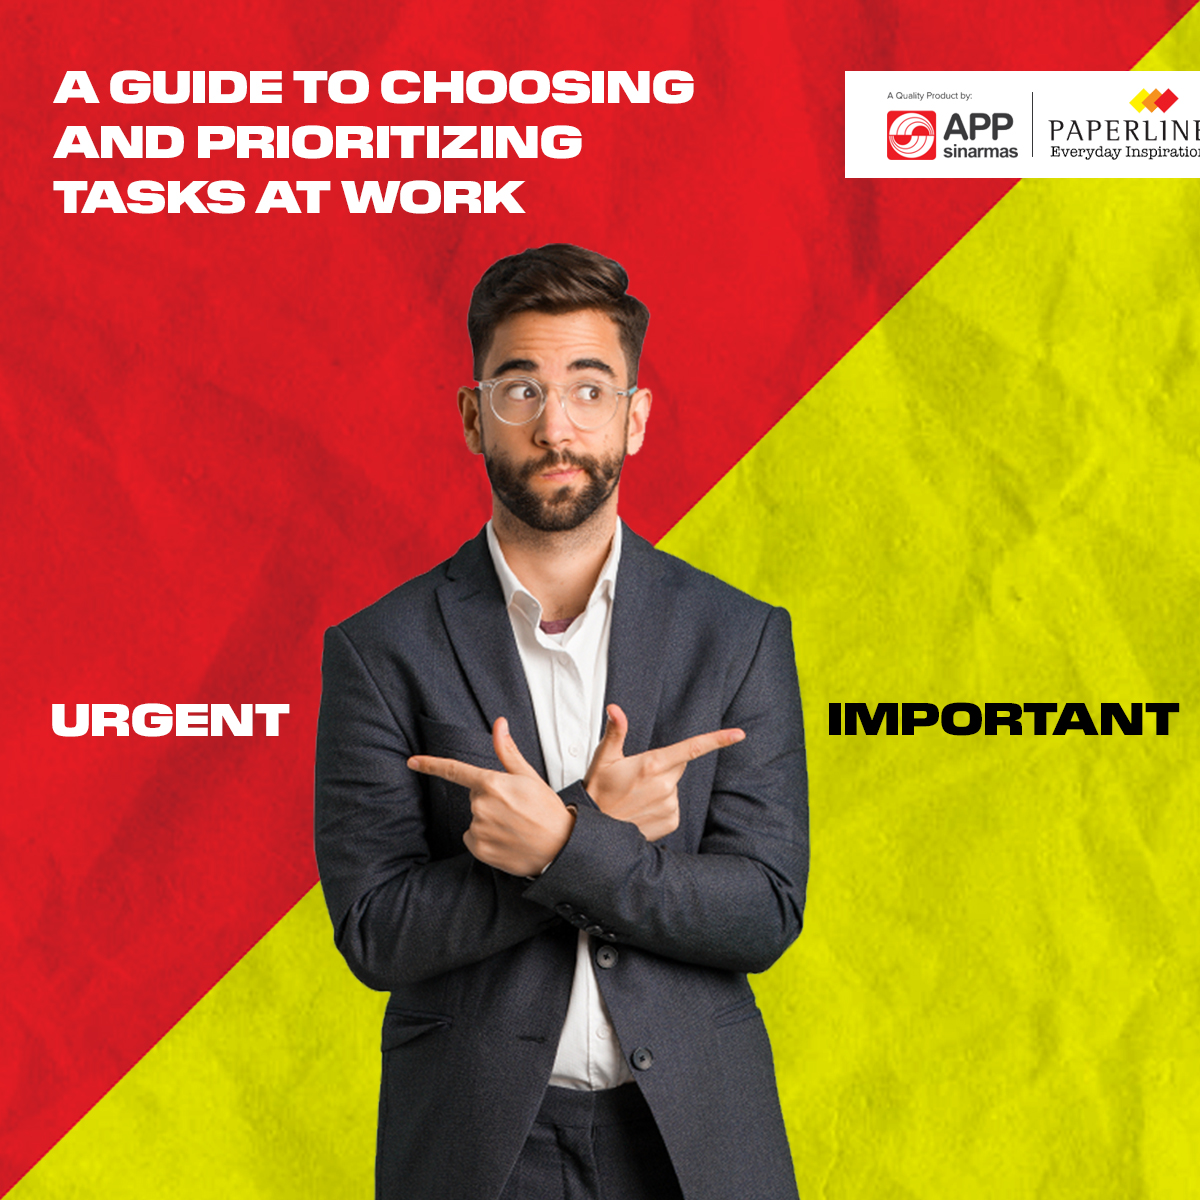 Urgent or important? A guide to choosing and prioritizing tasks at work